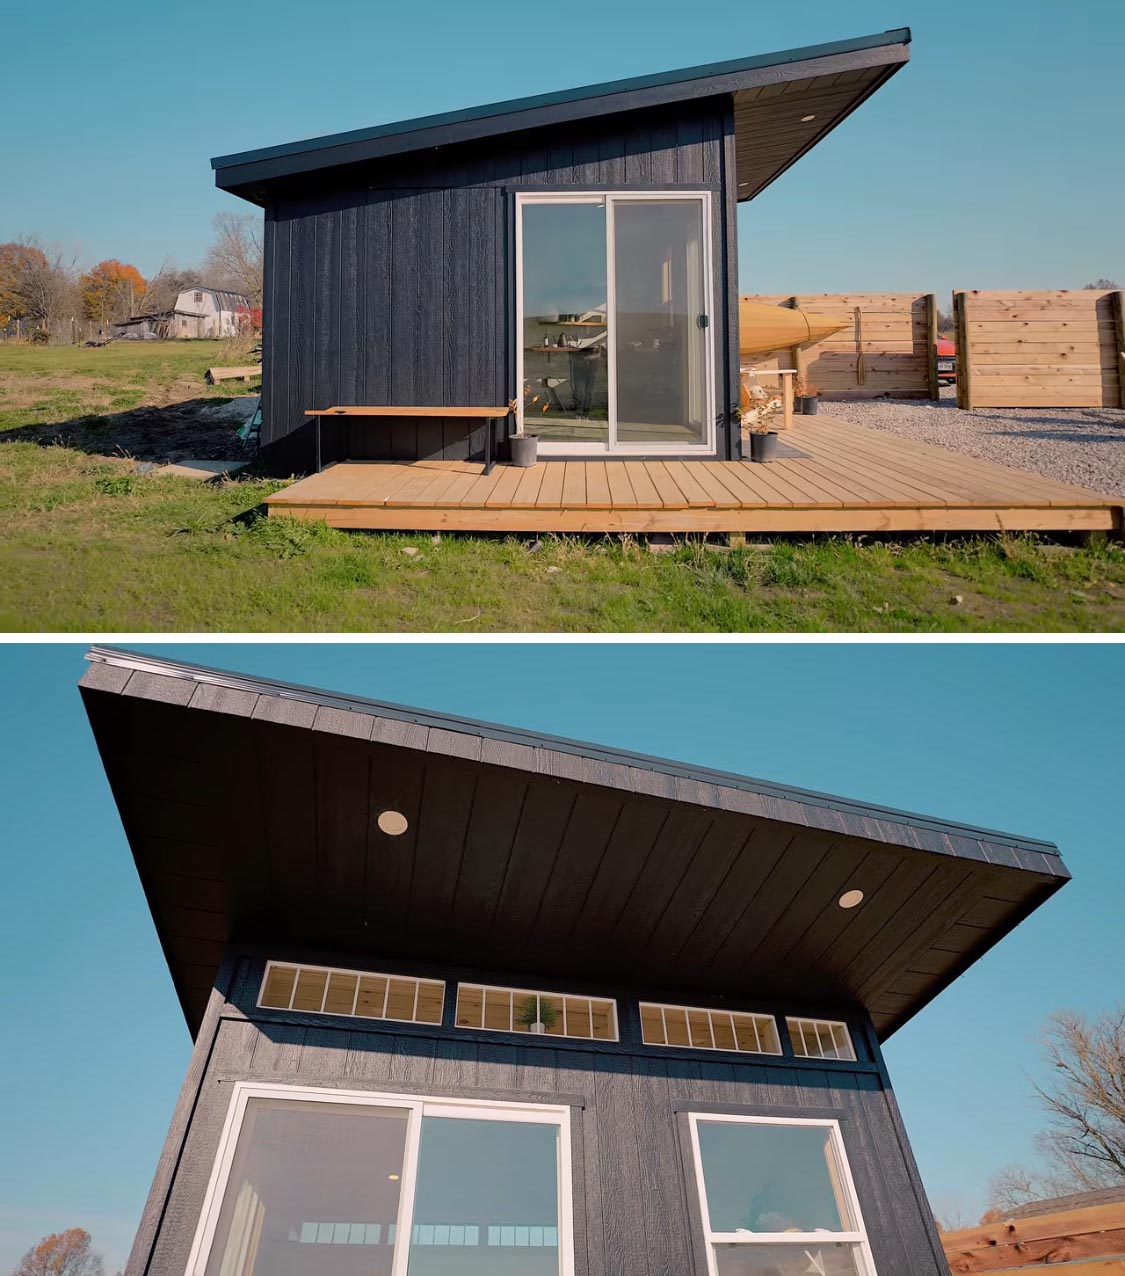 Wrapping around two sides of this modern tiny house is a natural wood deck that's accessible by a pair of sliding glass doors.